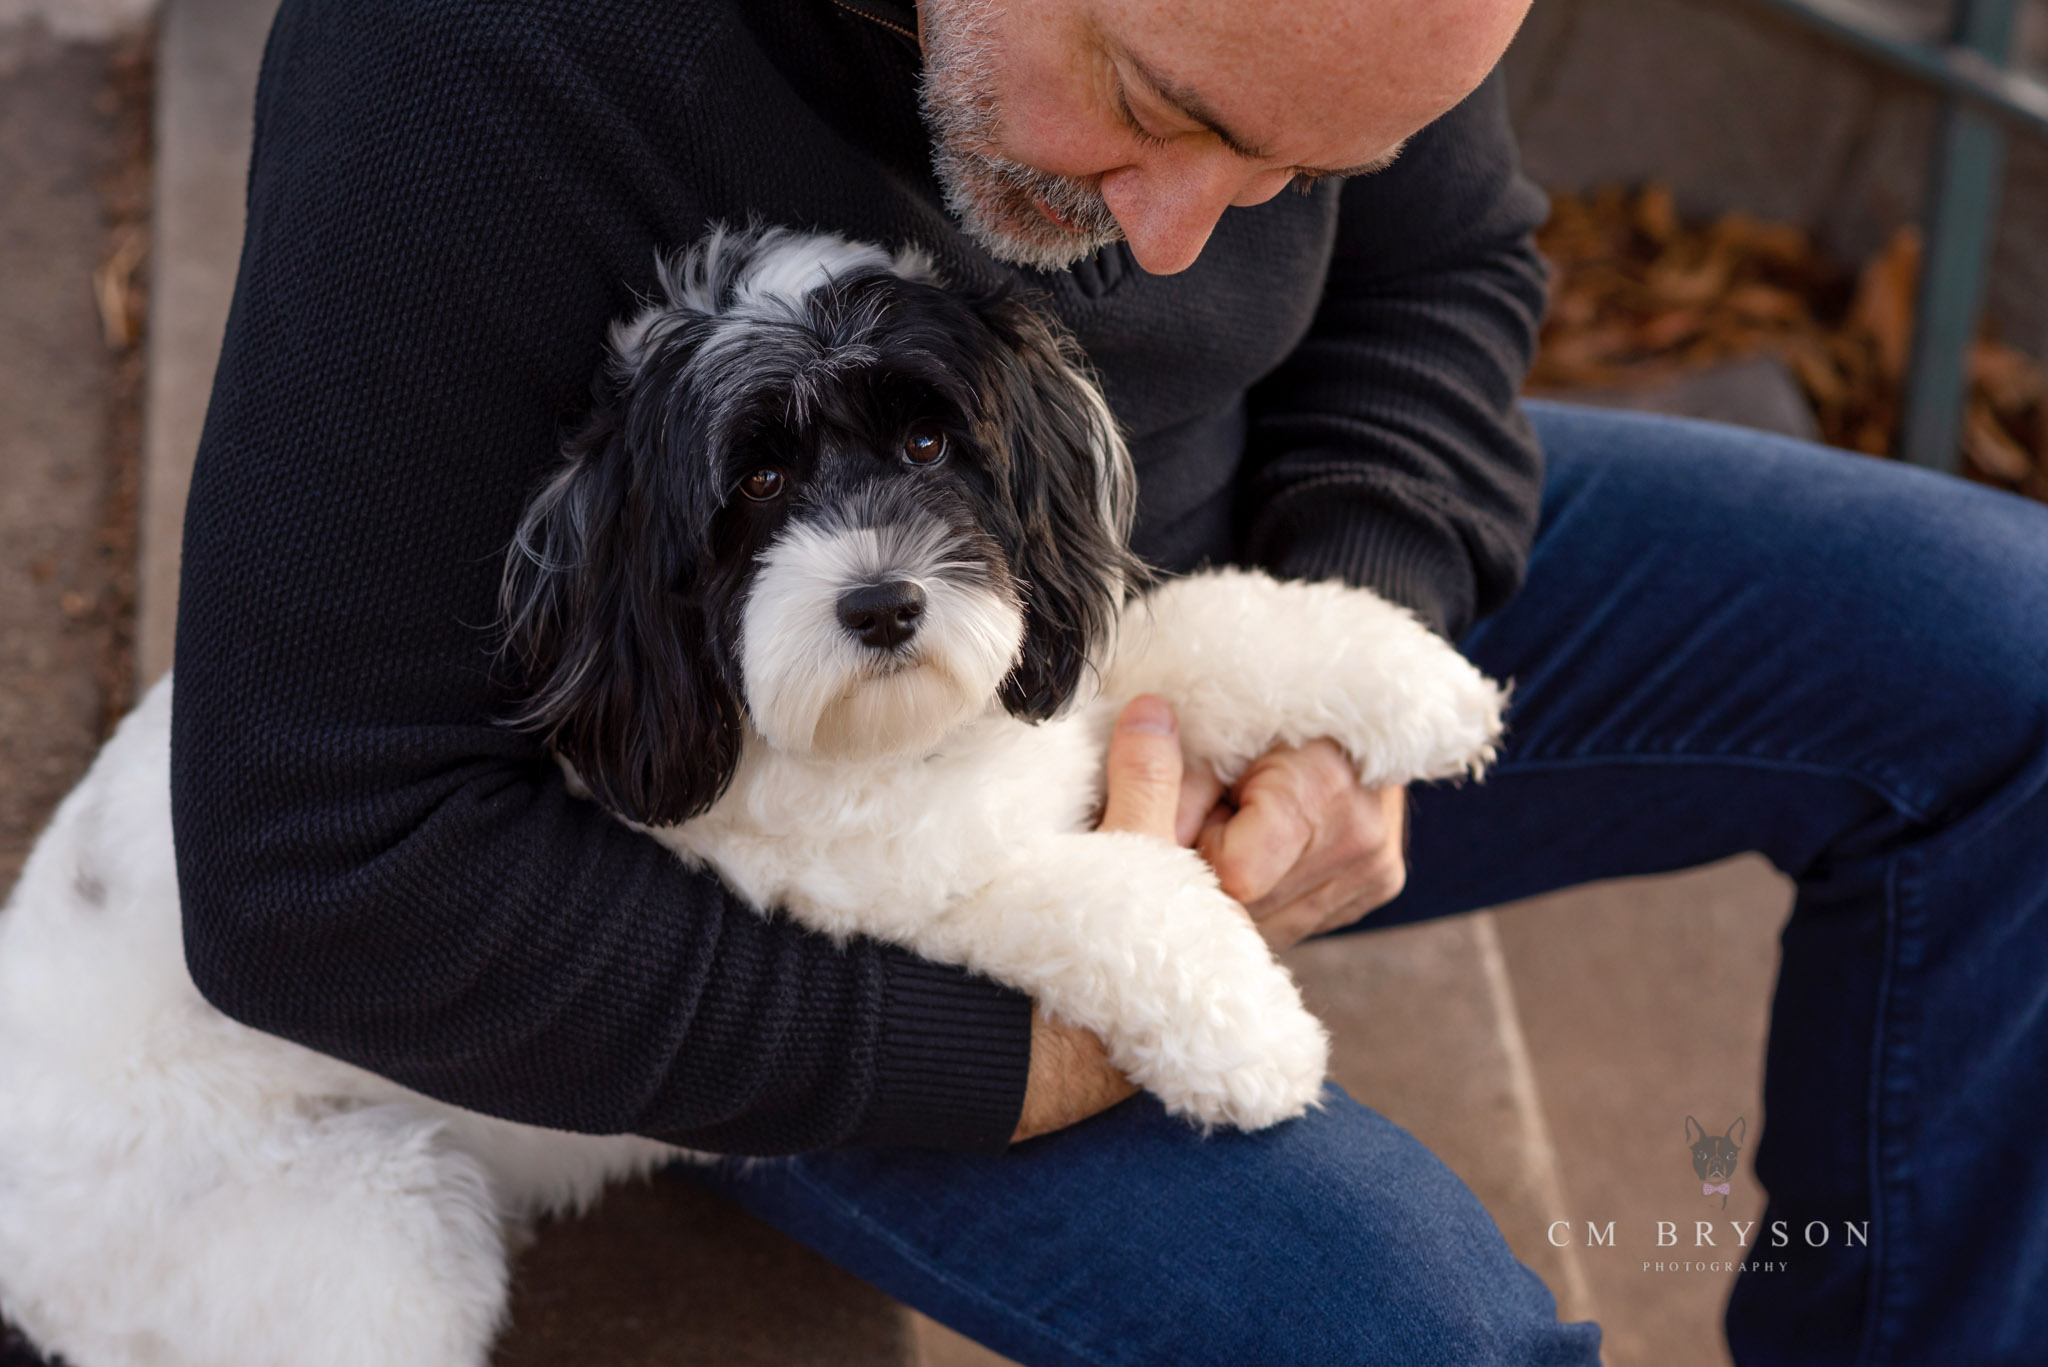 Labrdoodle sits in her dad's lap while they share a moment of connection.